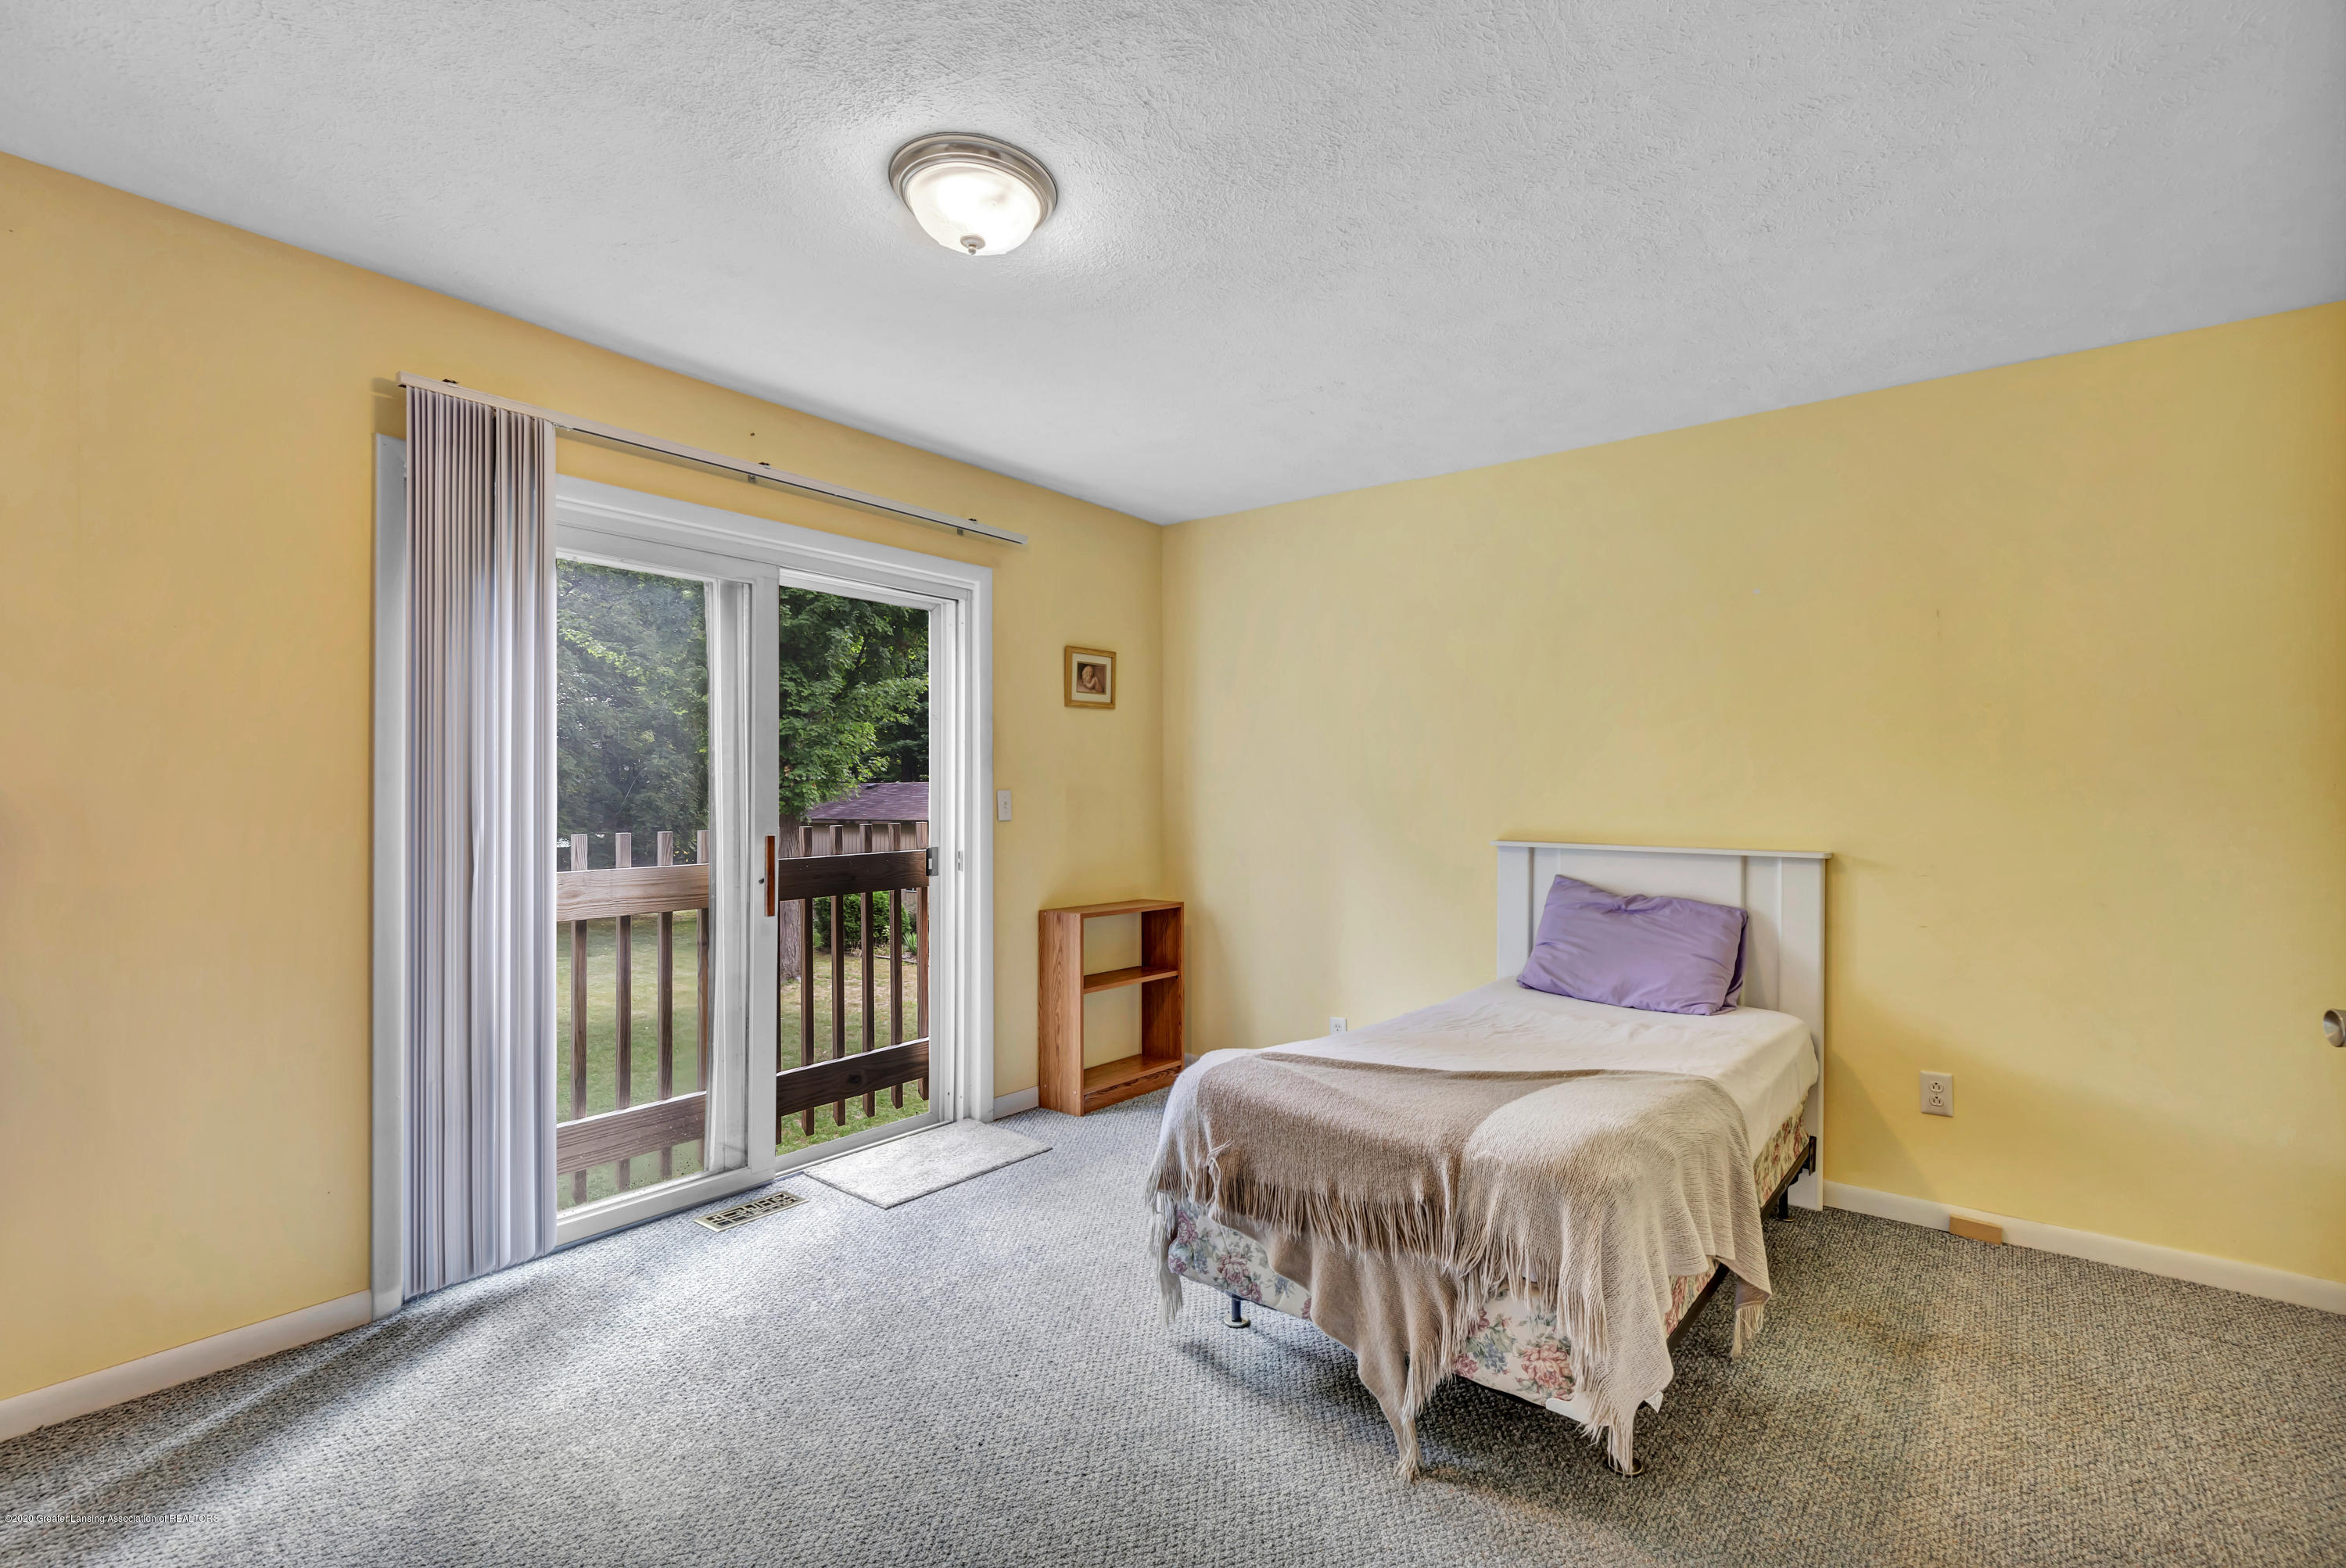 6641 Kingdon Ave - Bedroom - 18